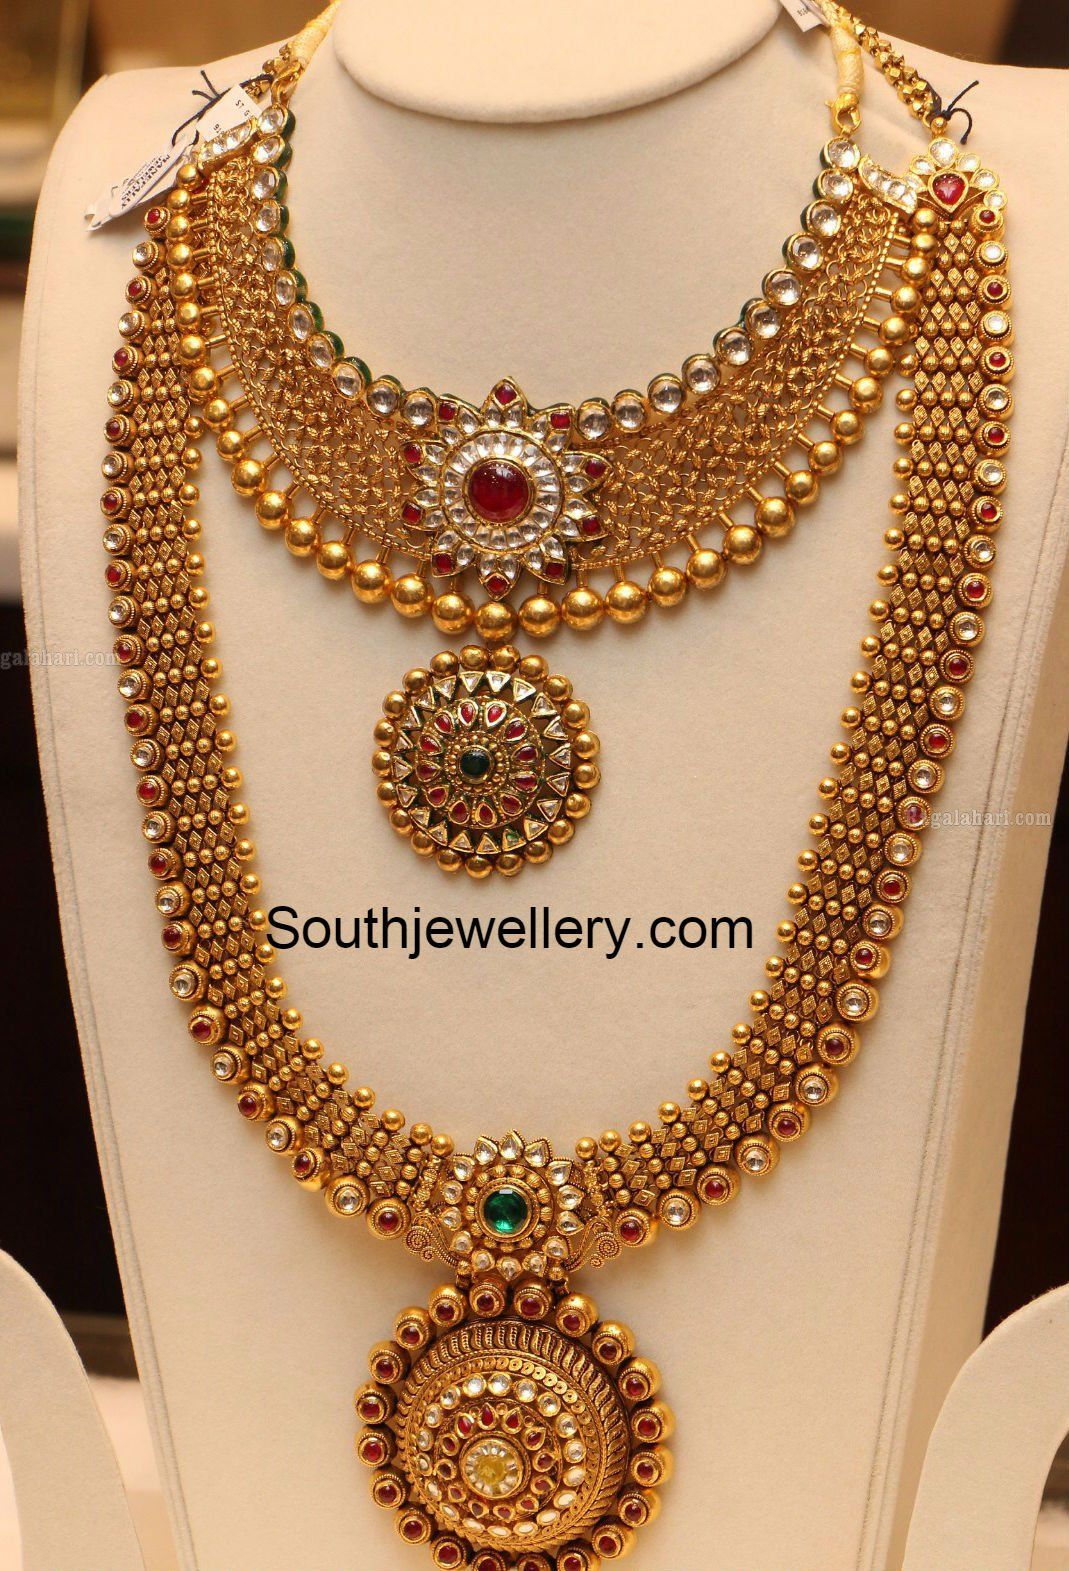 Antique Gold Necklace And Haram Set Photo Jewelry Design Black